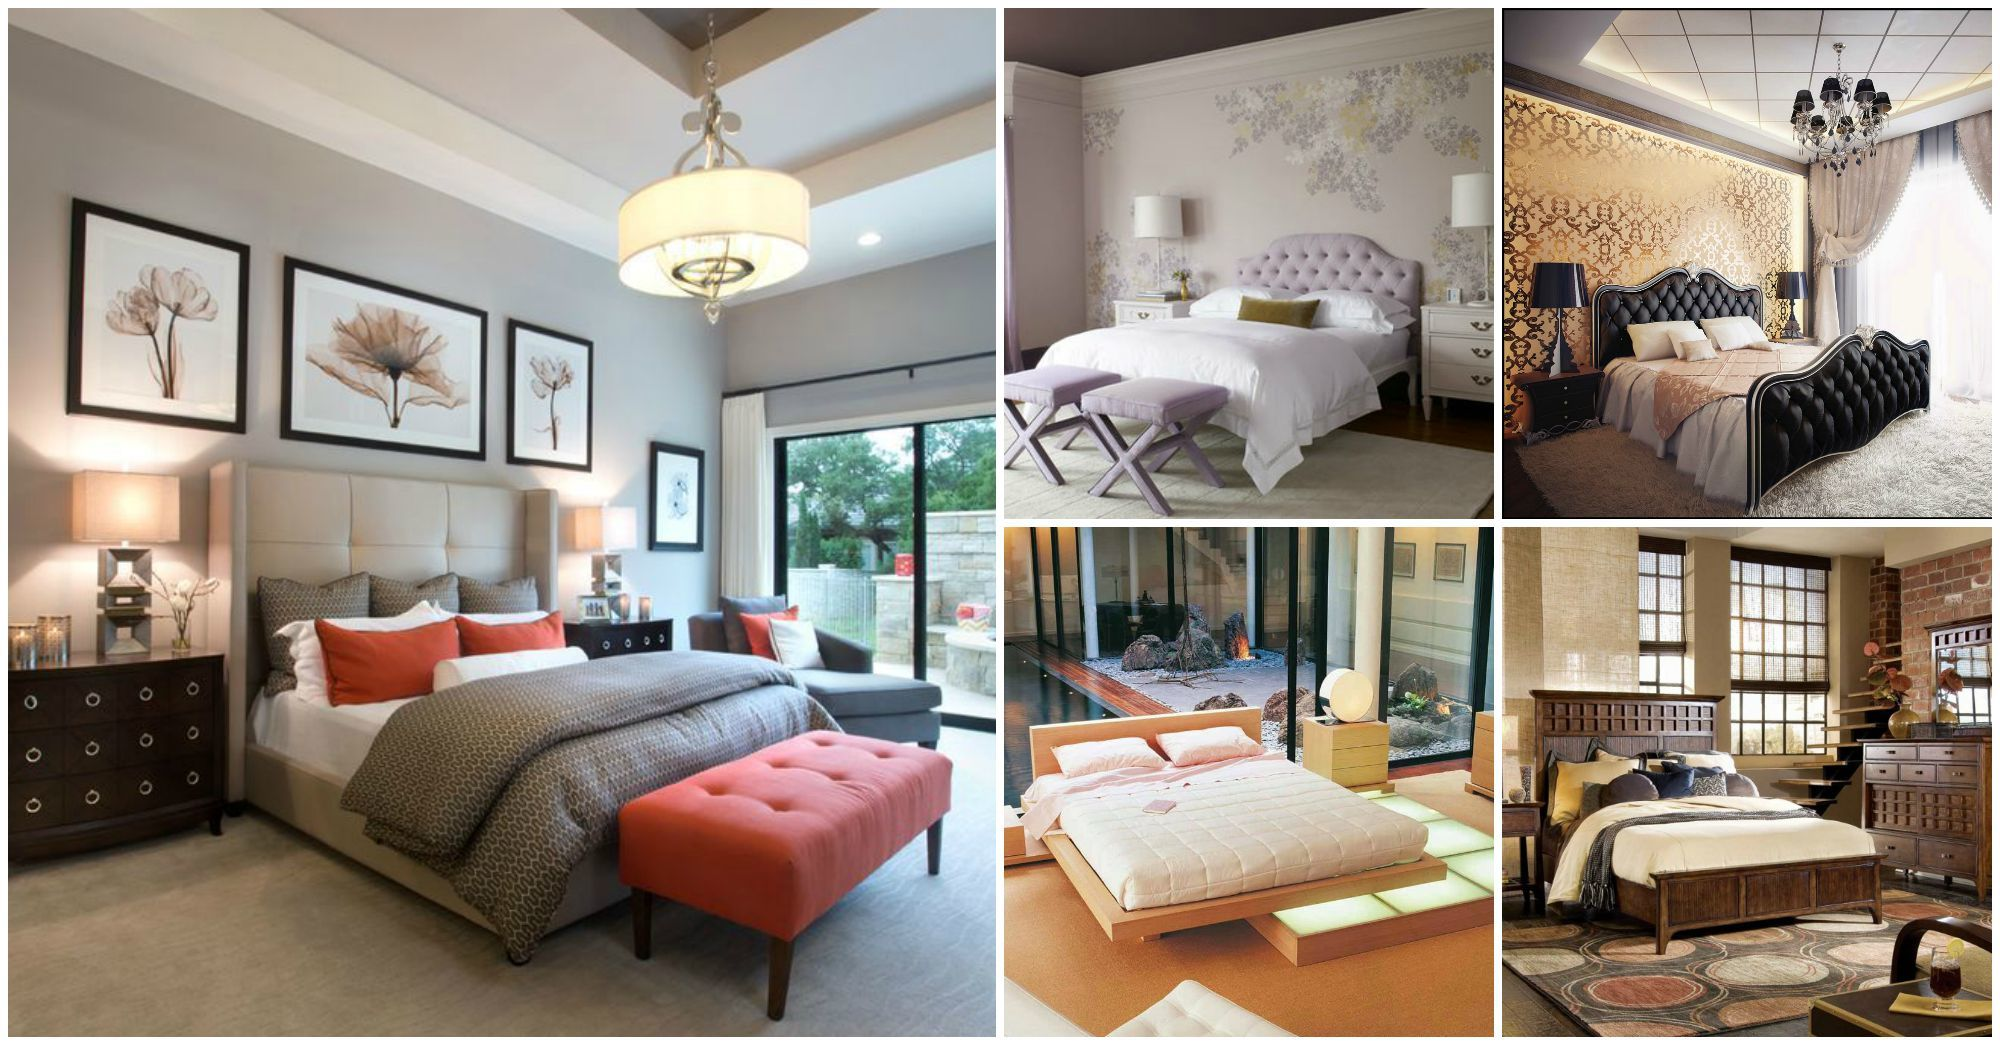 Modern Bedroom Furniture Designs That You Would Love To Have In Your Bedroom